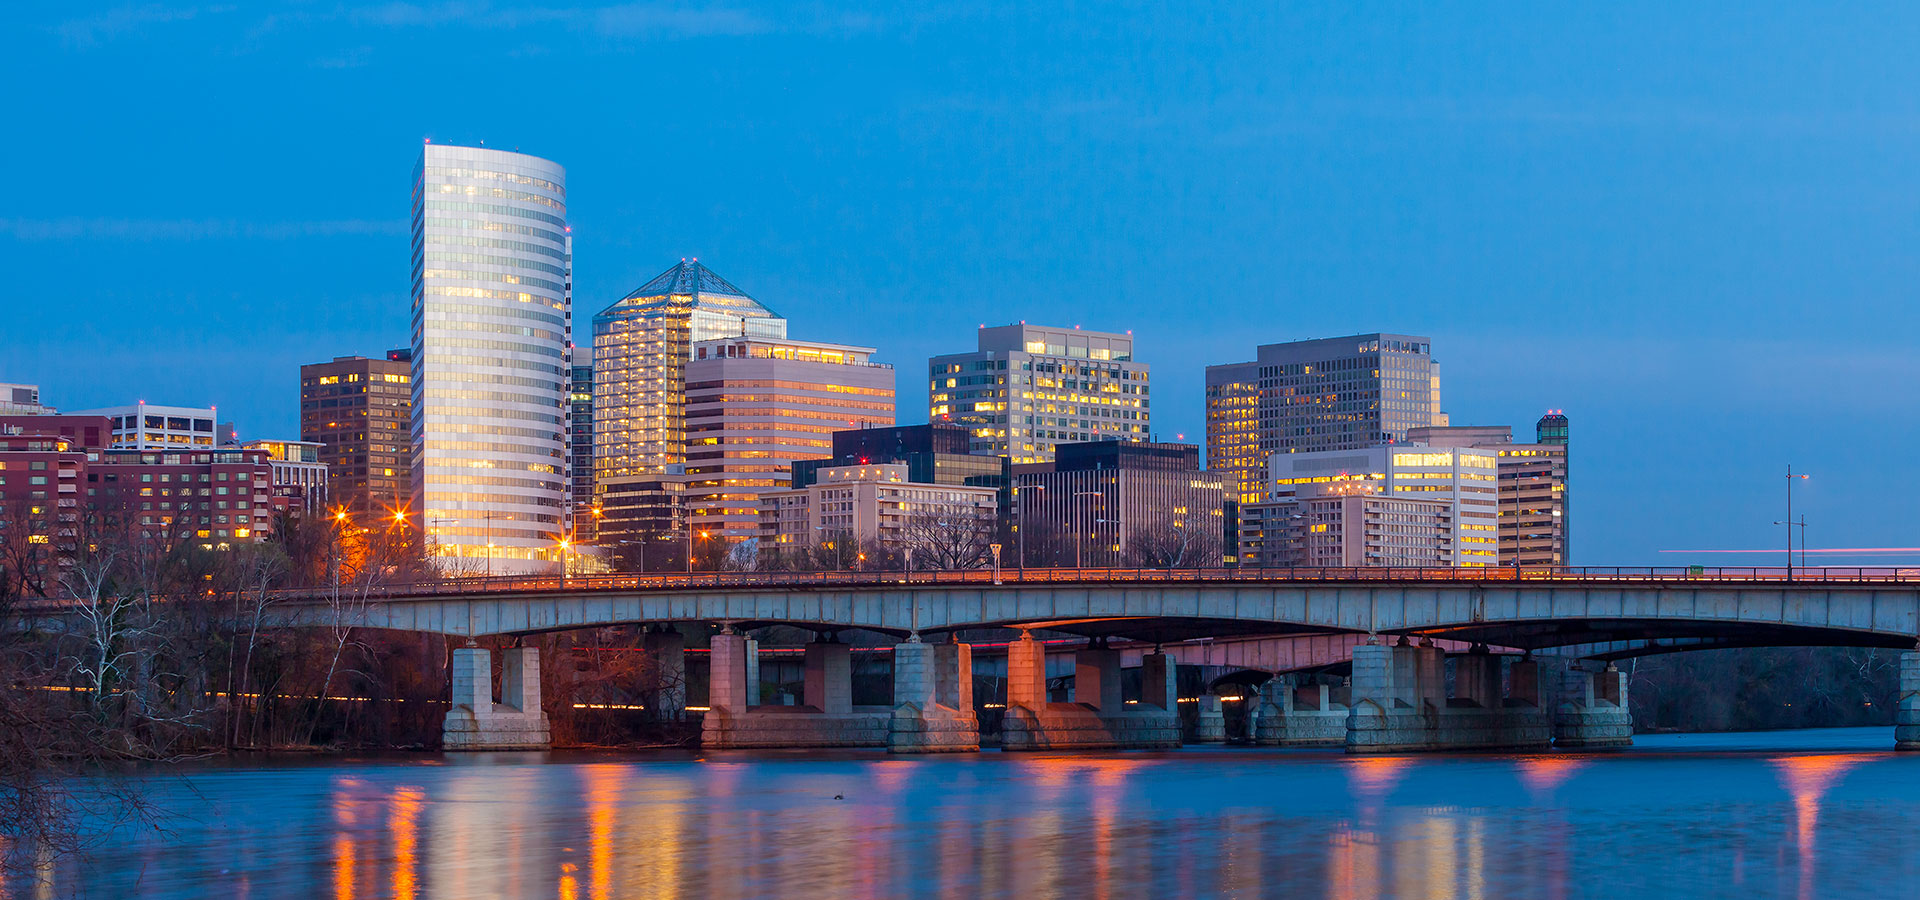 benchmark-automation-controls-in-rosslyn-virginia